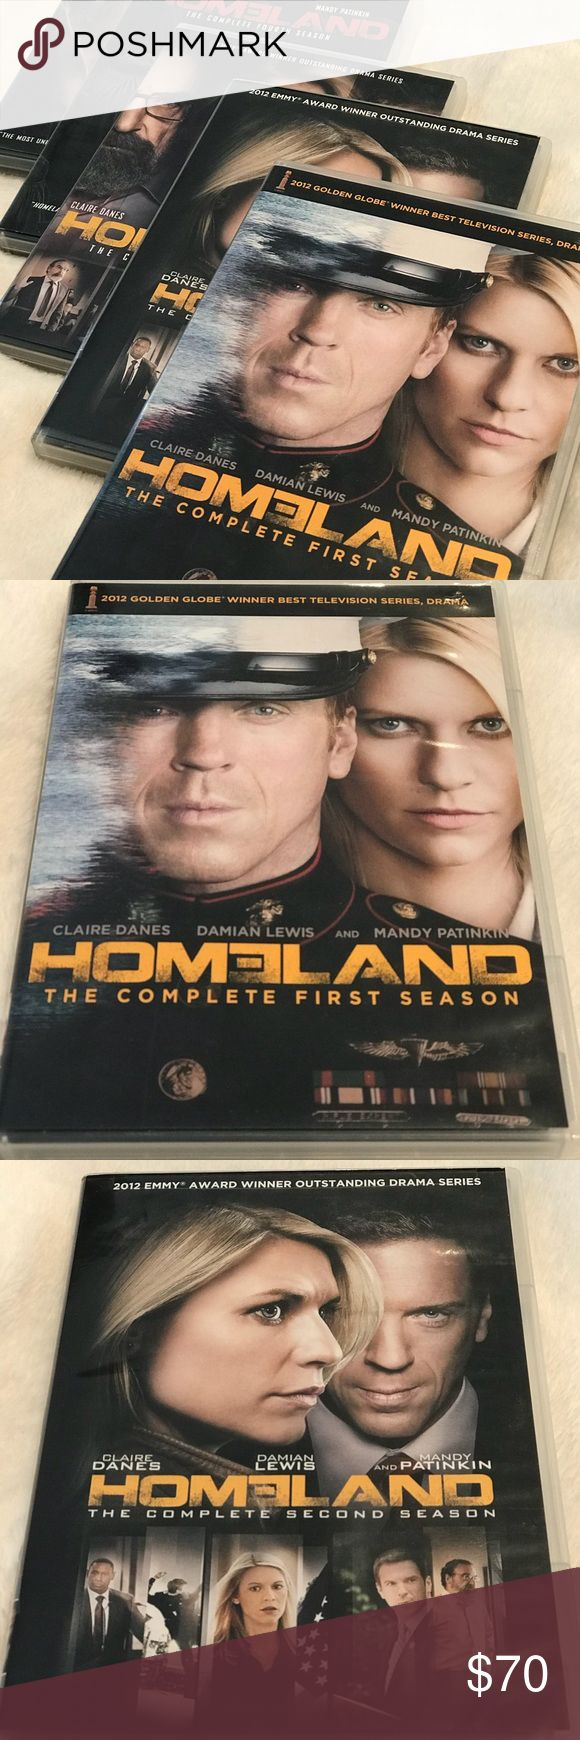 HBO Homeland Complete Seasons 1-5 DVD Cozy up on the weekend with this incredibly entertaining and addicting show! Entire season watched only once, all discs in mint condition! Super fast shipping 👍 Other